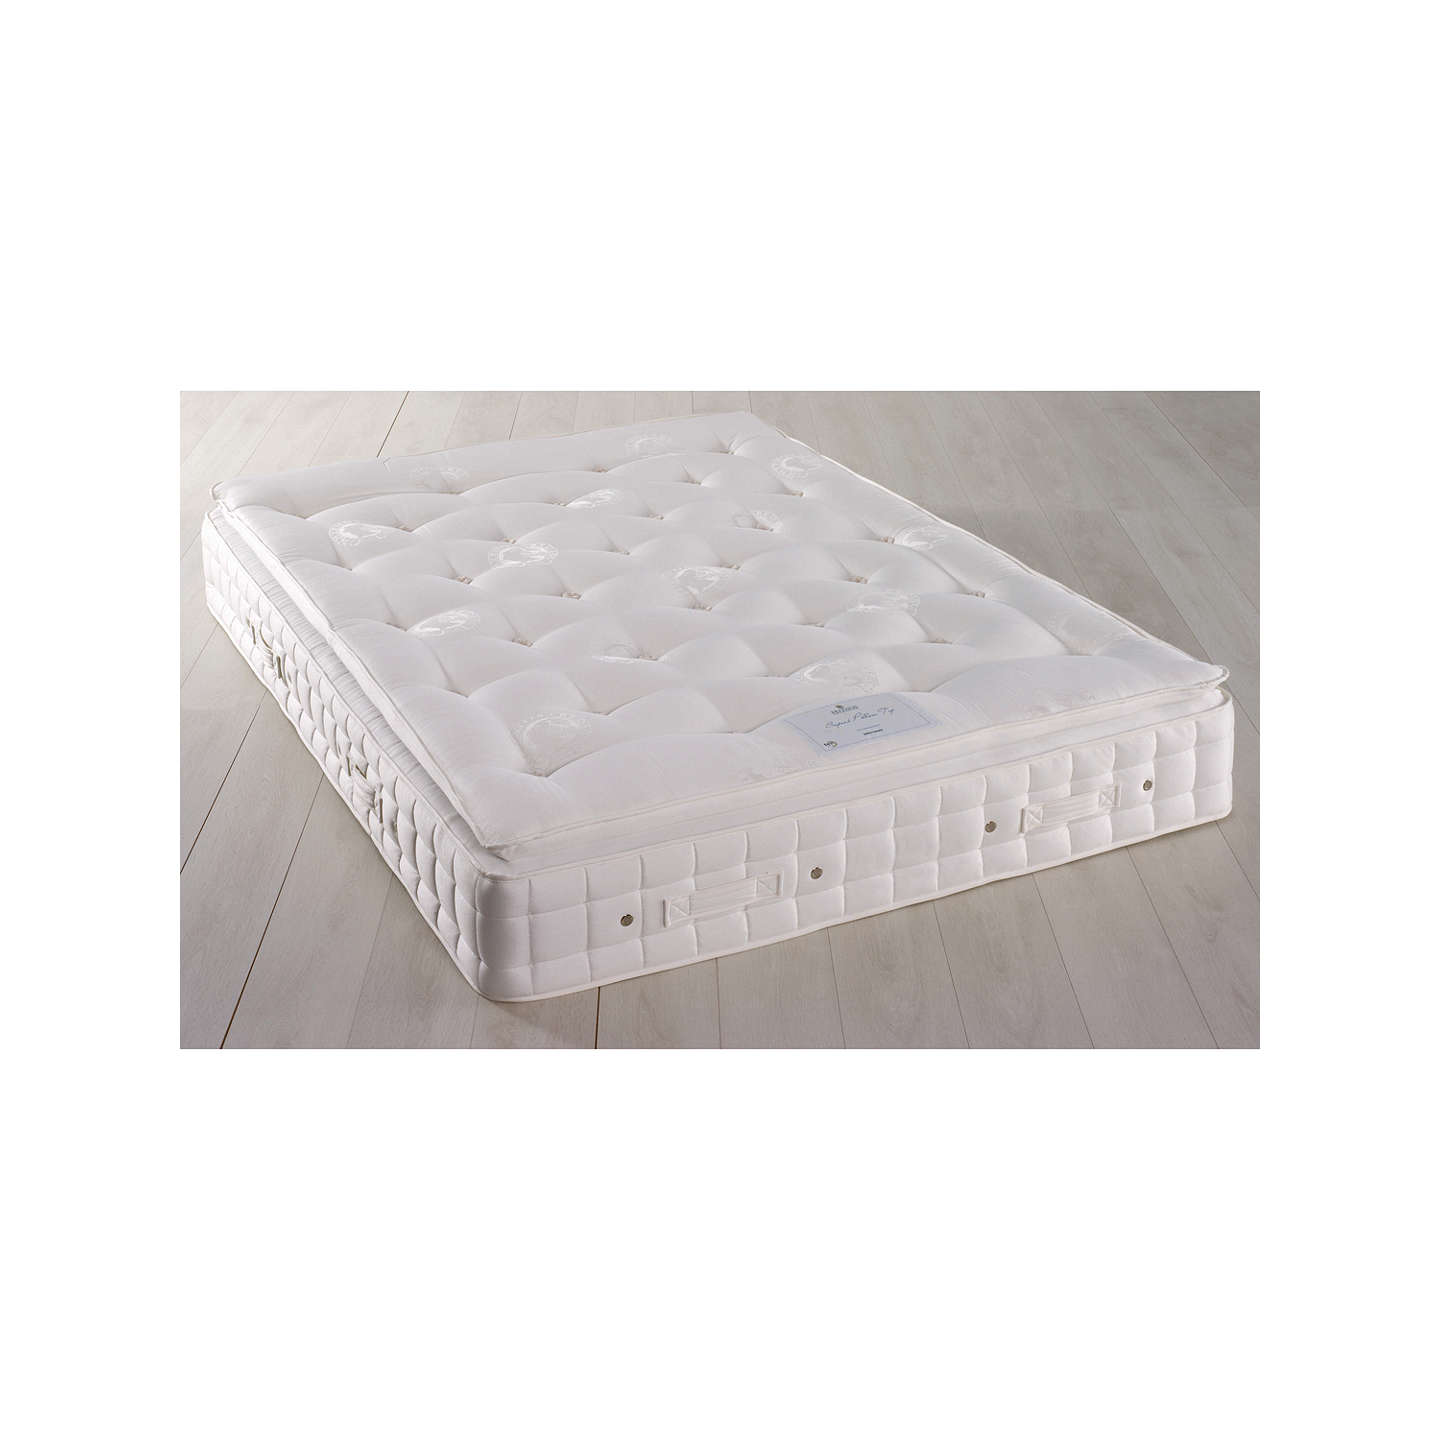 geltex silentnightr cartulina inside binding miraform topper silentnight top telada sealy paper mattress gr pillow